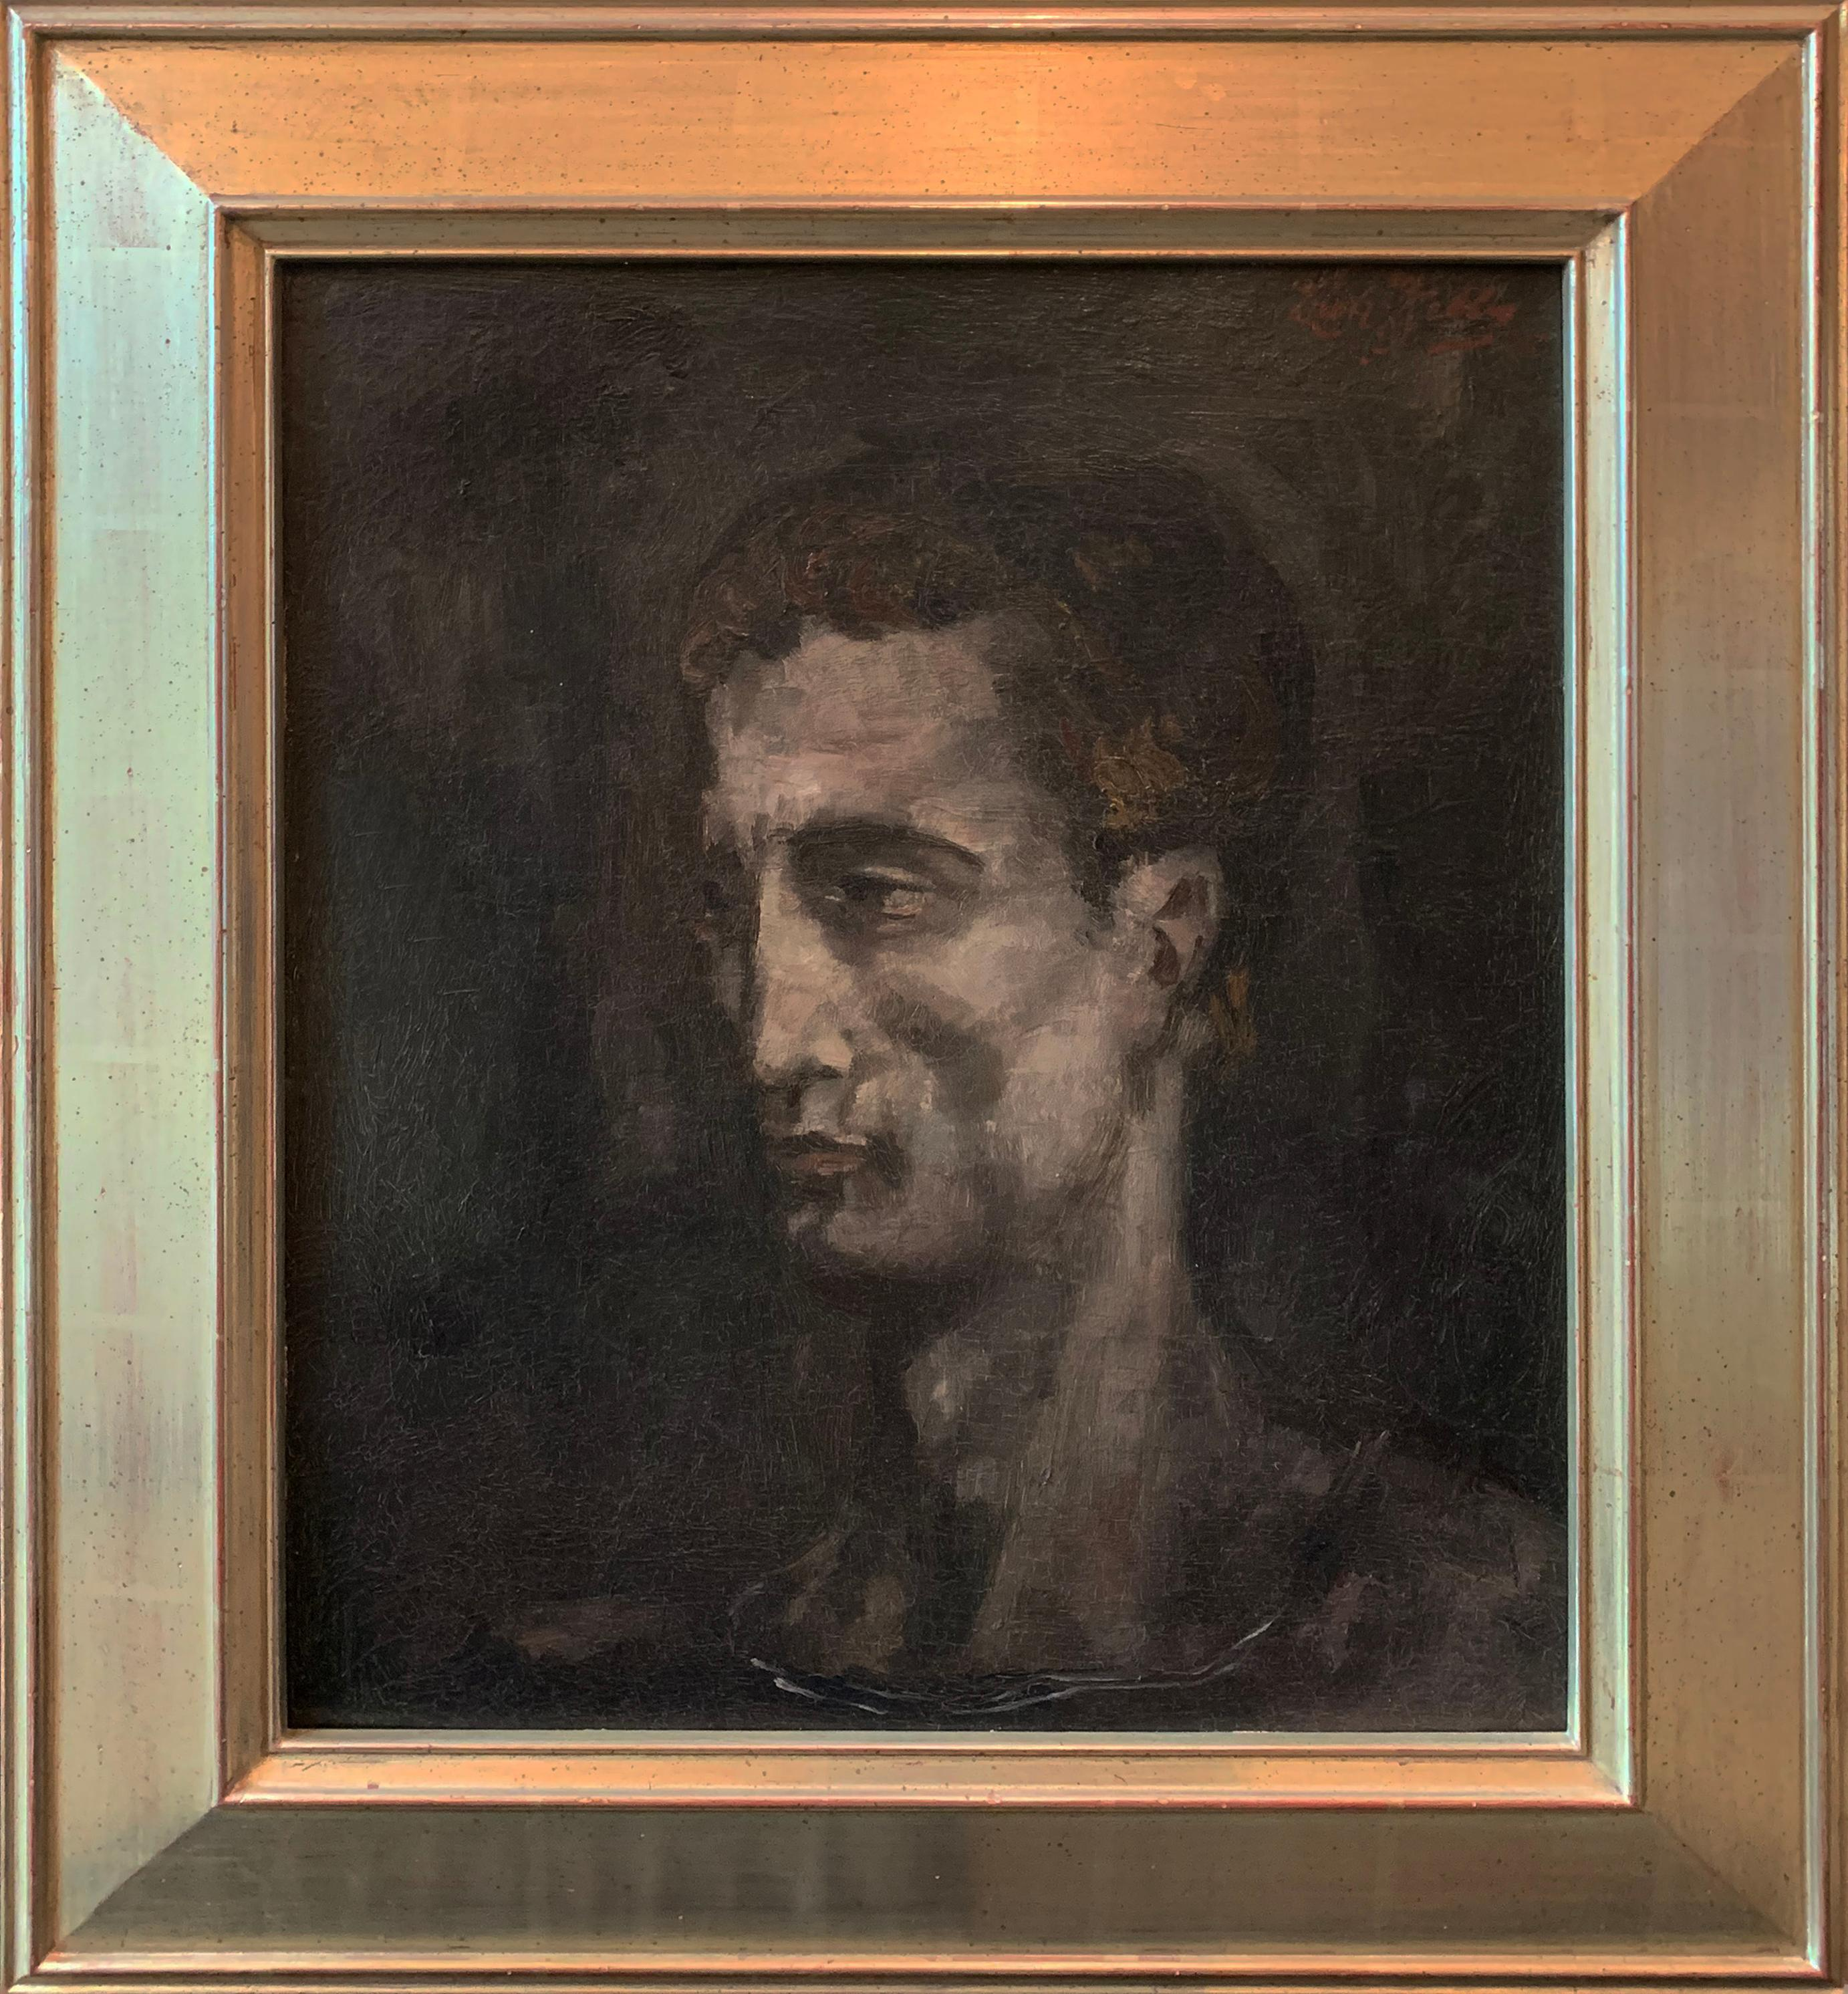 Self Portrait, Oil on Board, Signed and Dated, 1925, American Modernist